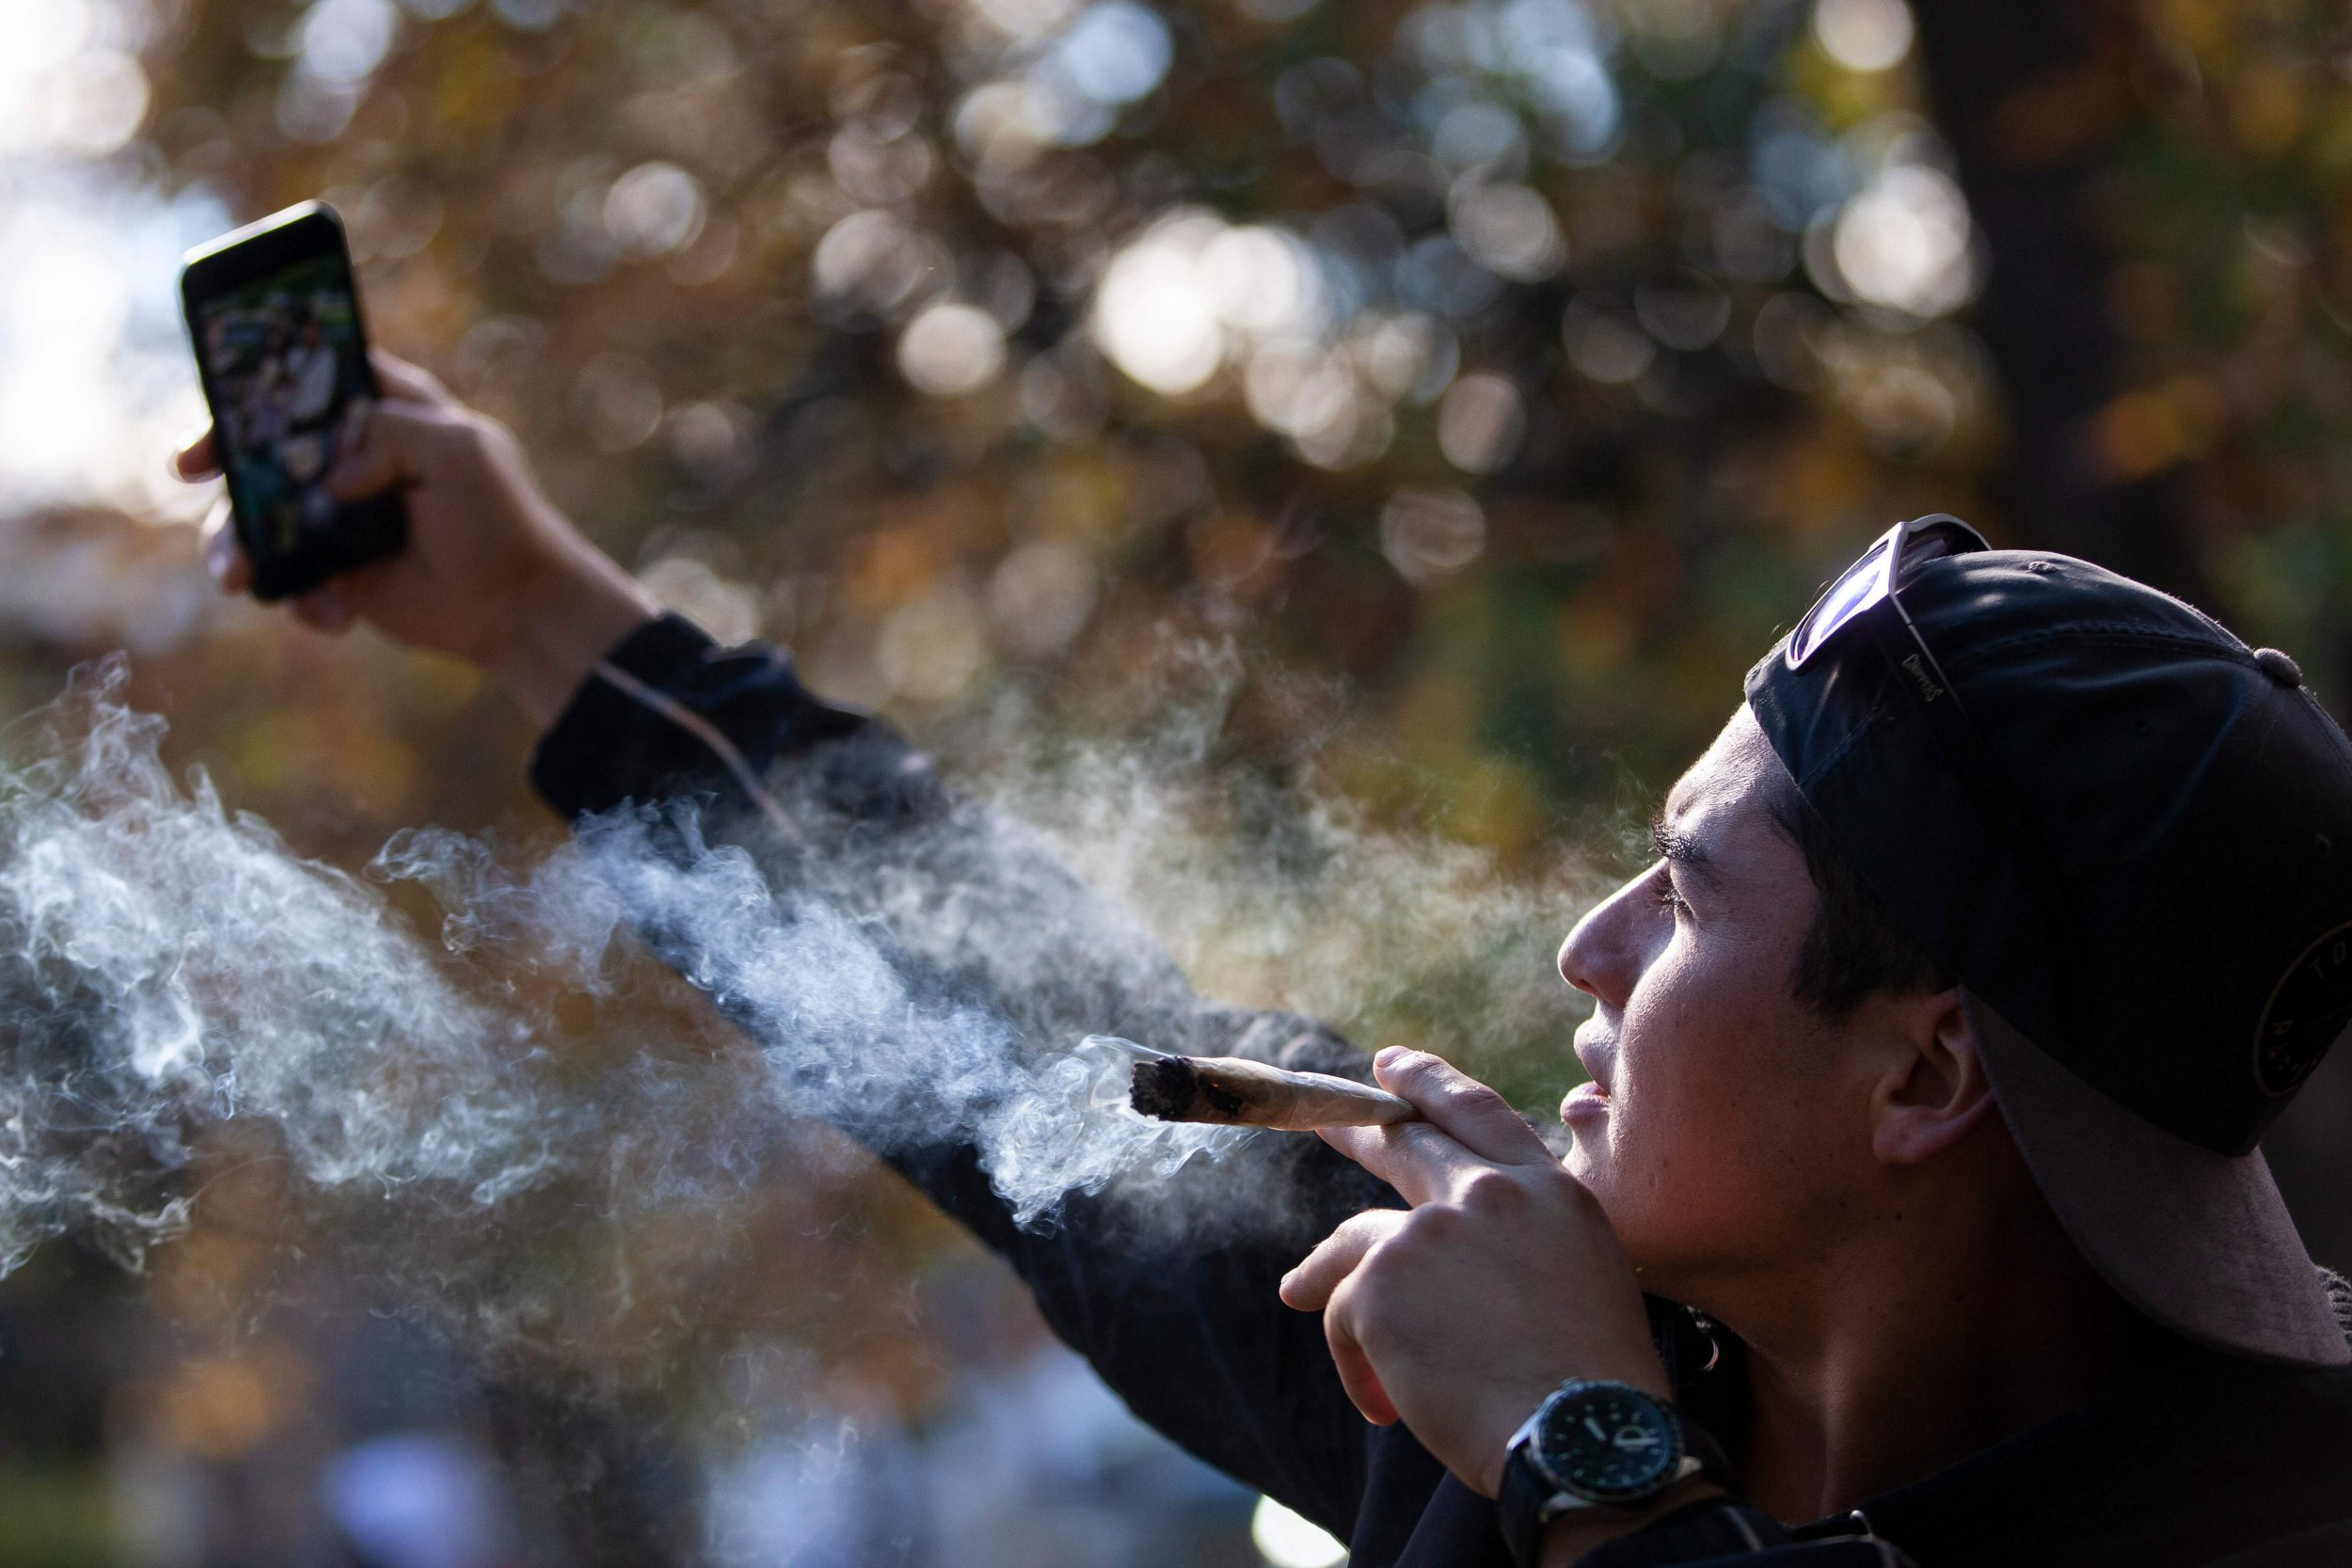 A man takes a selfie as he smokes a marijuana cigarette during a legalization party at Trinity Bellwoods Park in Toronto, Ontario, October 17, 2018. - Nearly a century of marijuana prohibition came to an end Wednesday as Canada became the first major Western nation to legalize and regulate its sale and recreational use. Scores of customers braved the cold for hours outside Tweed, a pot boutique in St John's, Newfoundland that opened briefly at midnight, to buy their first grams of legal cannabis.In total, Statistics Canada says 5.4 million Canadians will buy cannabis from legal dispensaries in 2018 -- about 15 percent of the population. Around 4.9 million already smoke. (Photo by Geoff Robins / AFP)GEOFF ROBINS/AFP/Getty Images